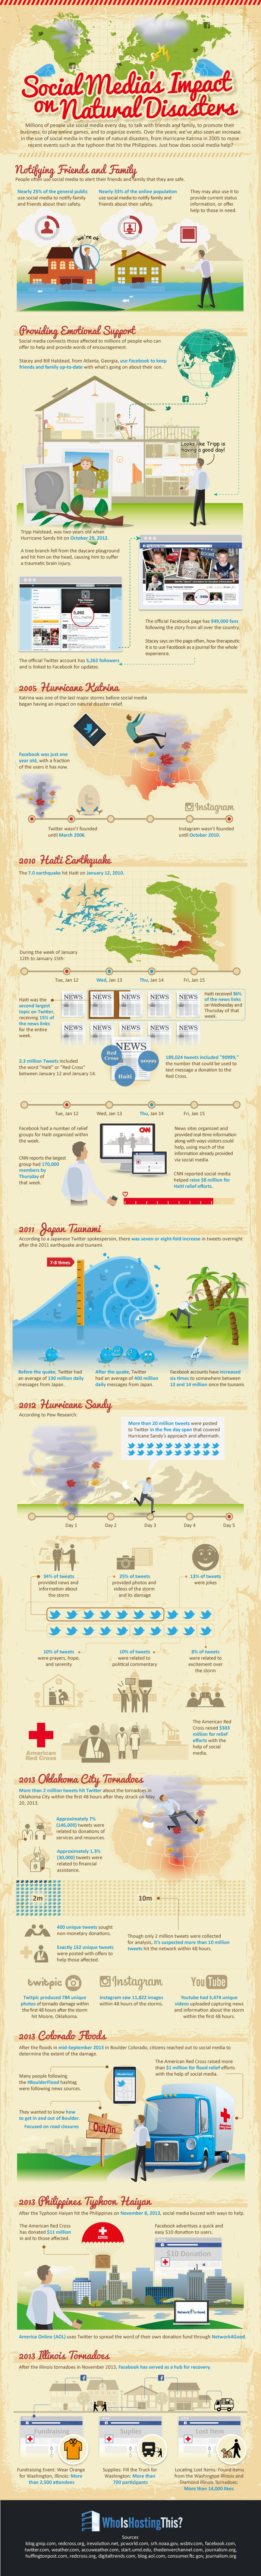 Social Media's Impact On Natural Disasters [INFOGRAPHIC]